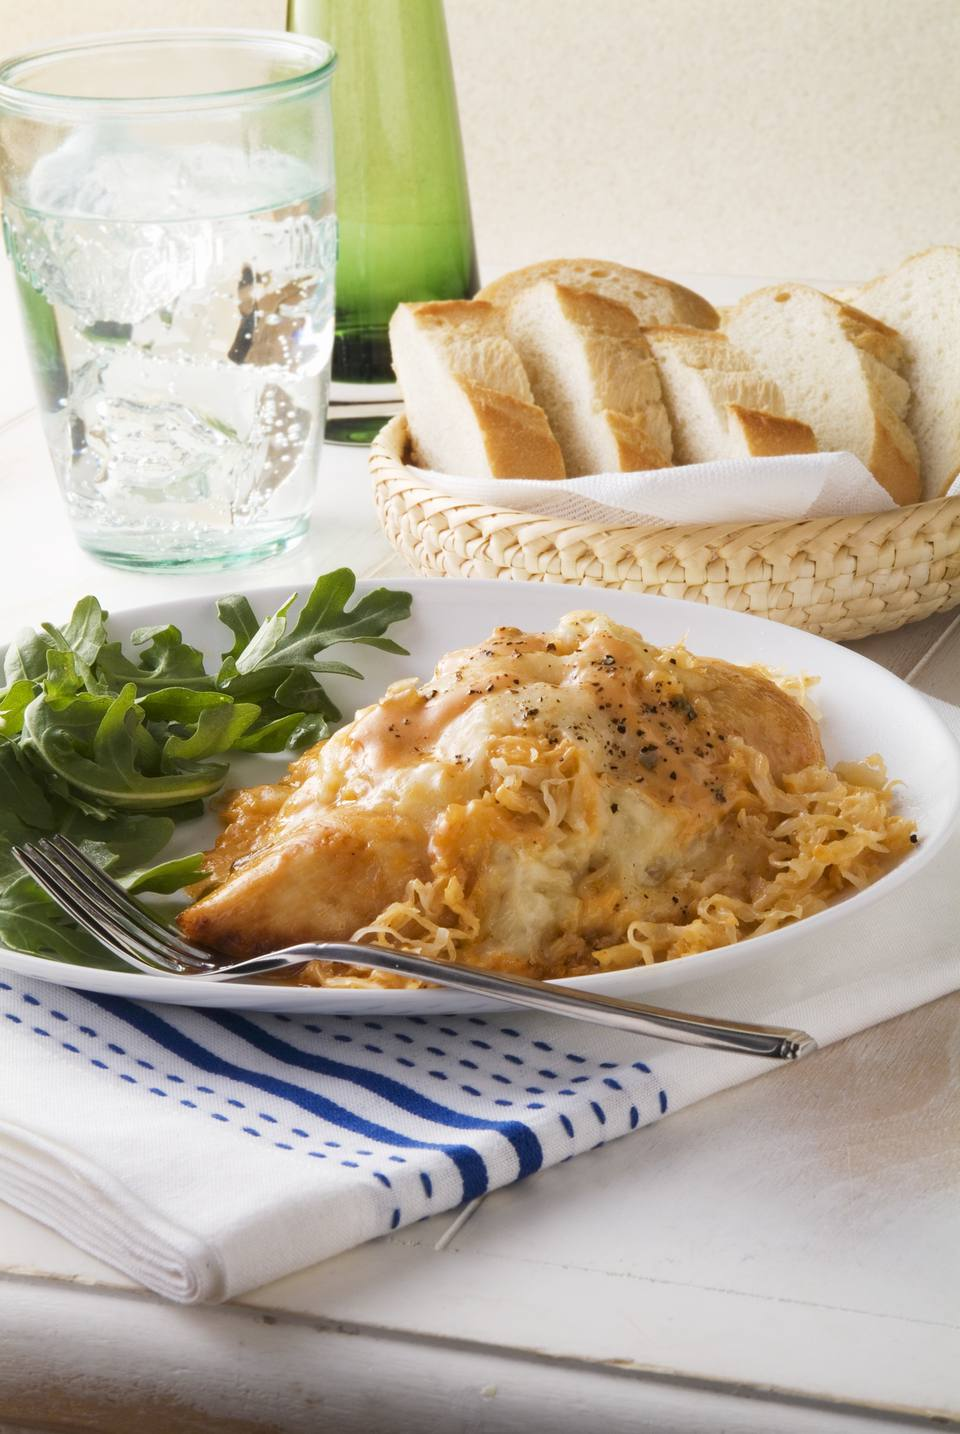 Ruben Style Baked Chicken with Arugula;